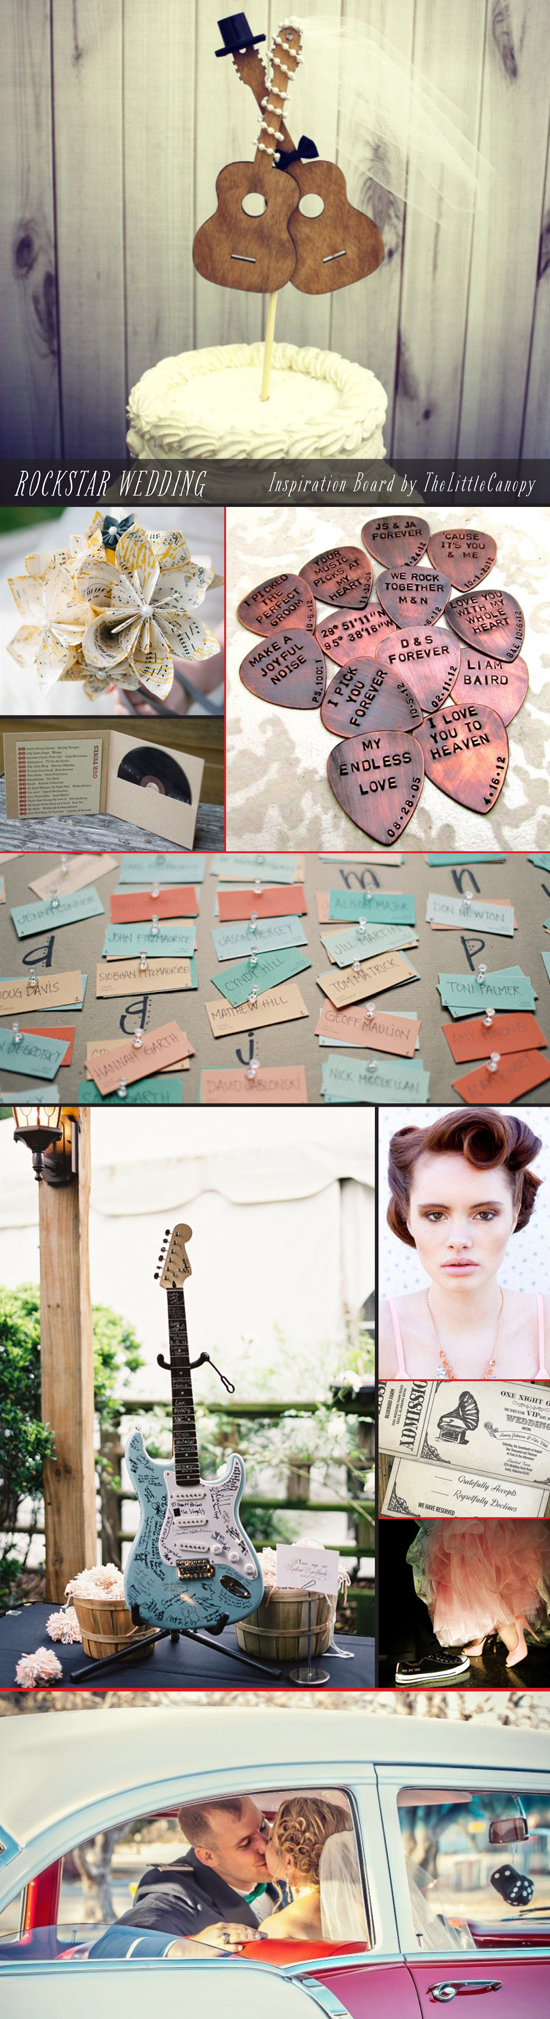 Our inspiration board for this week : Rockstar Wedding! Enjoy!